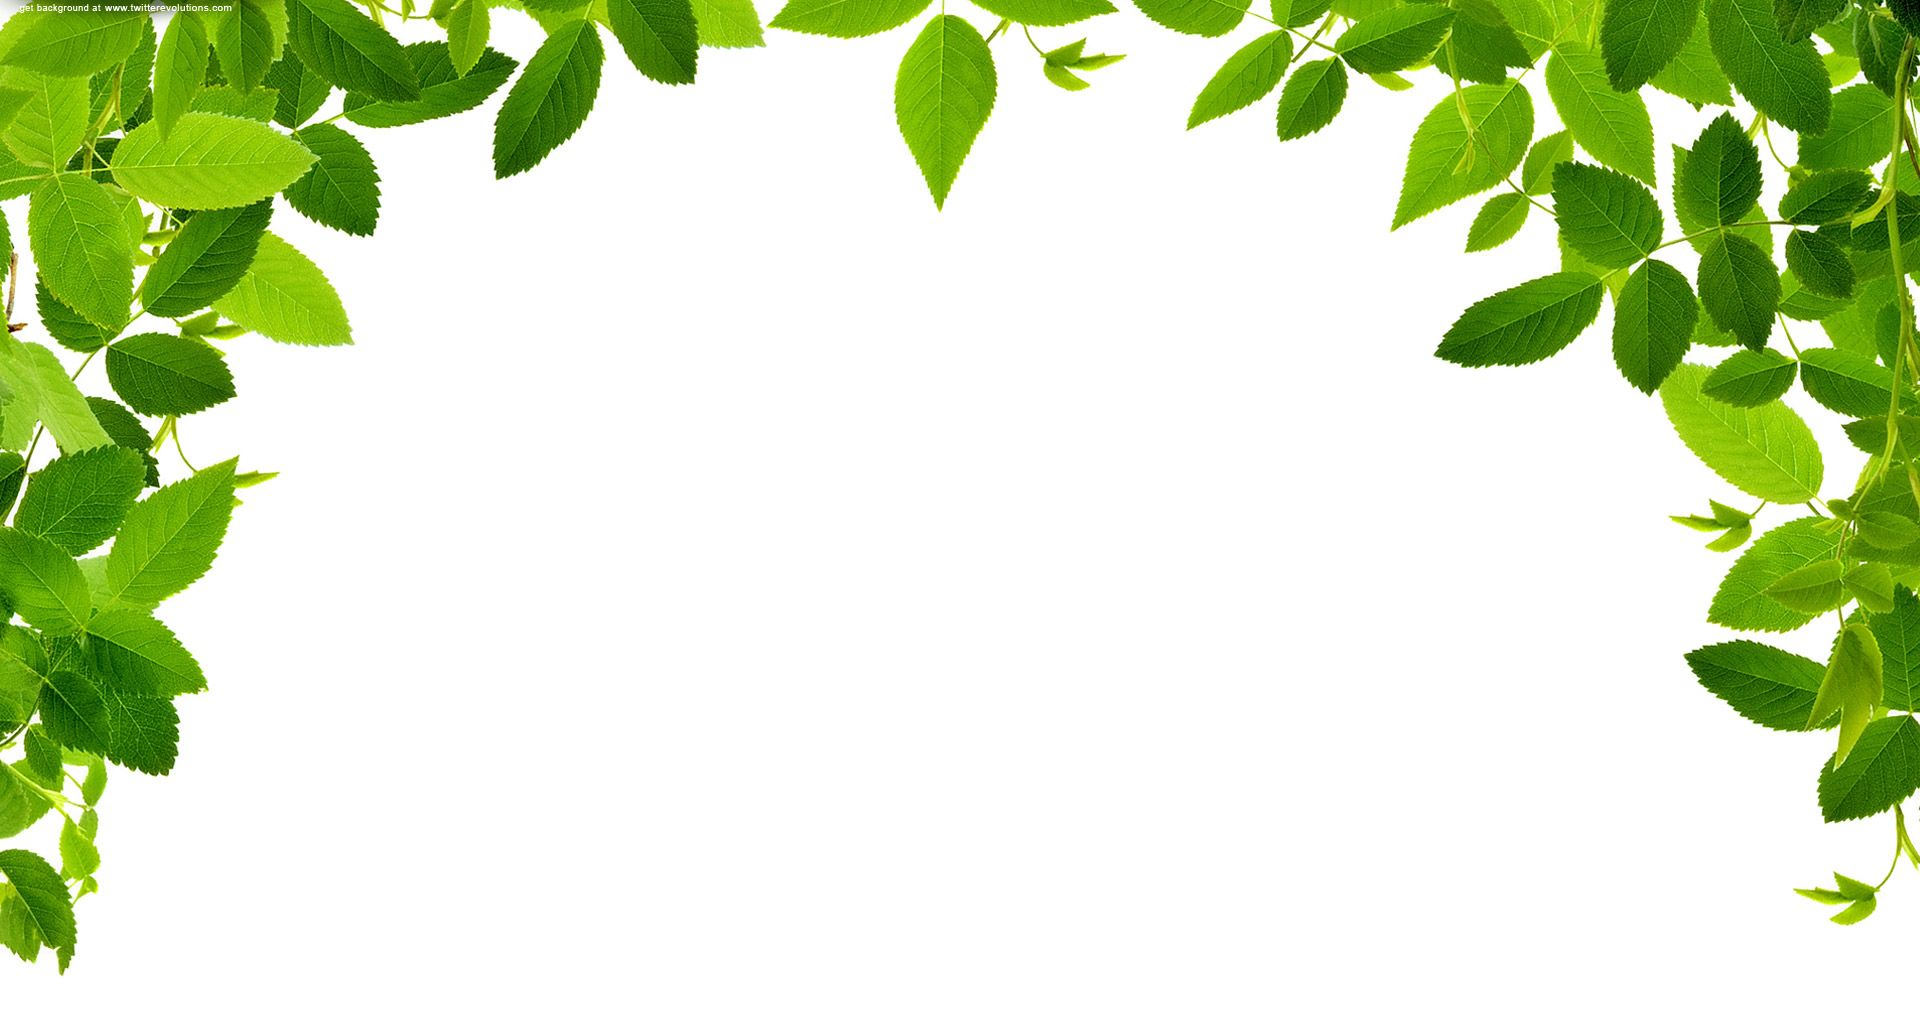 png freeuse stock Leaves real free images. Leaf border clipart